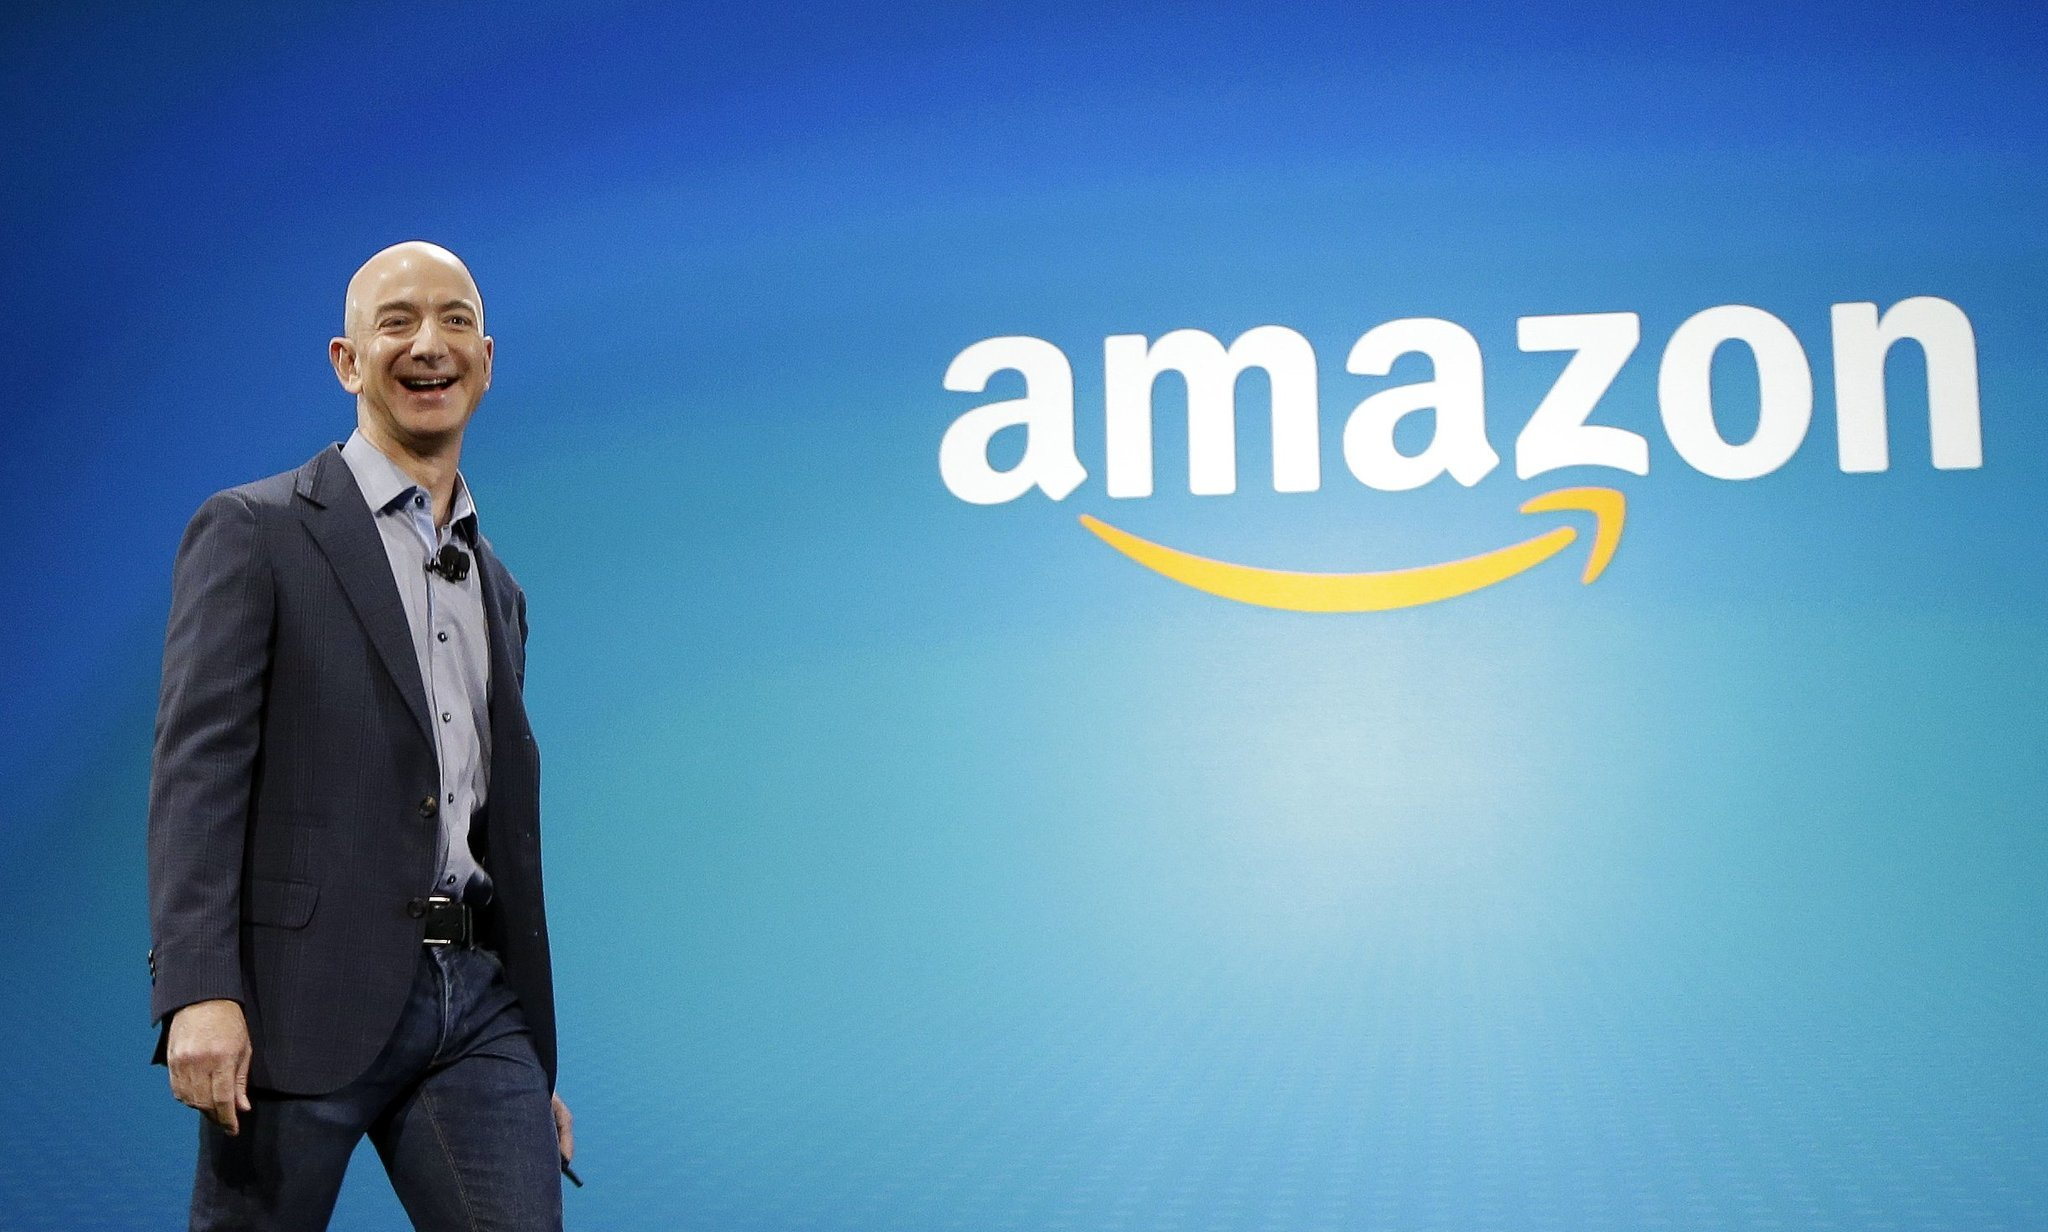 In a way, we all work for Amazon